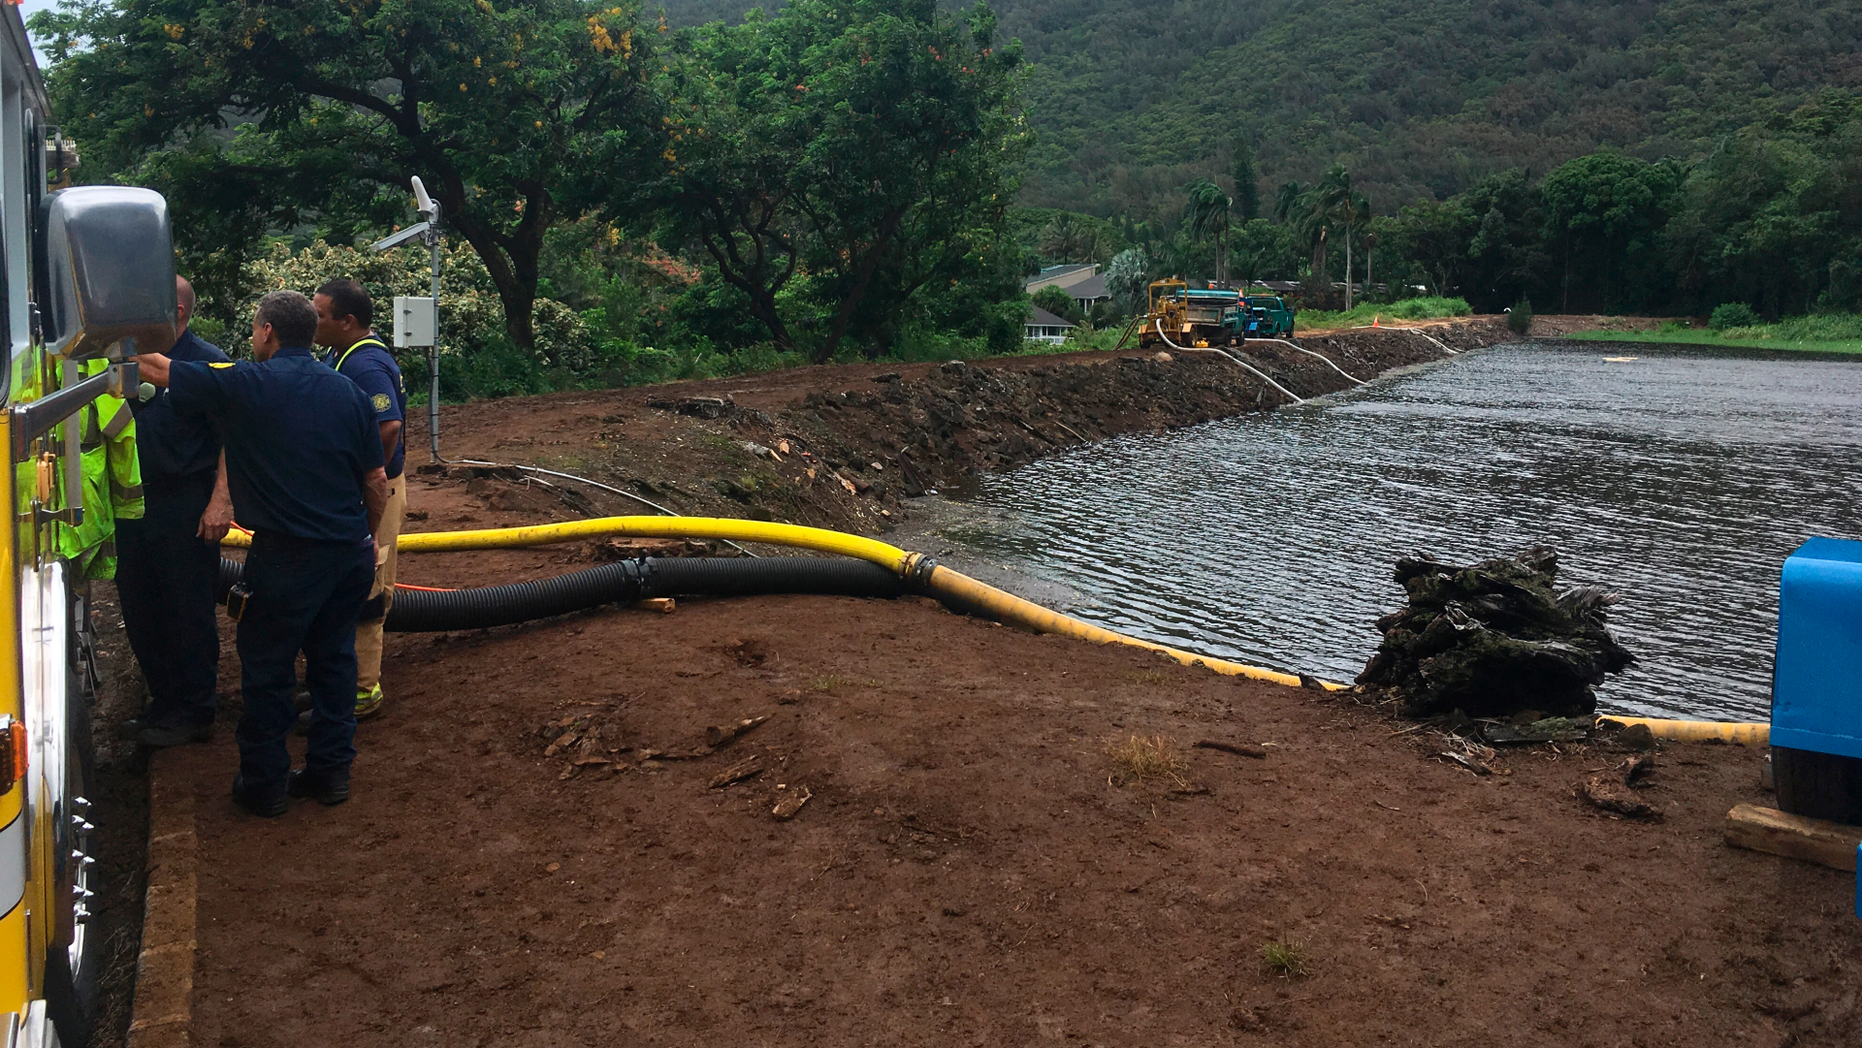 Officials pump water from a reservoir where a dam came close to overflowing in Honolulu on Thursday, Sept. 13, 2018. Honolulu officials say they may need to evacuate 10,000 people from a residential neighborhood if water in the reservoir continues to rise after heavy rains from a tropical storm. (AP Photo/Caleb Jones)